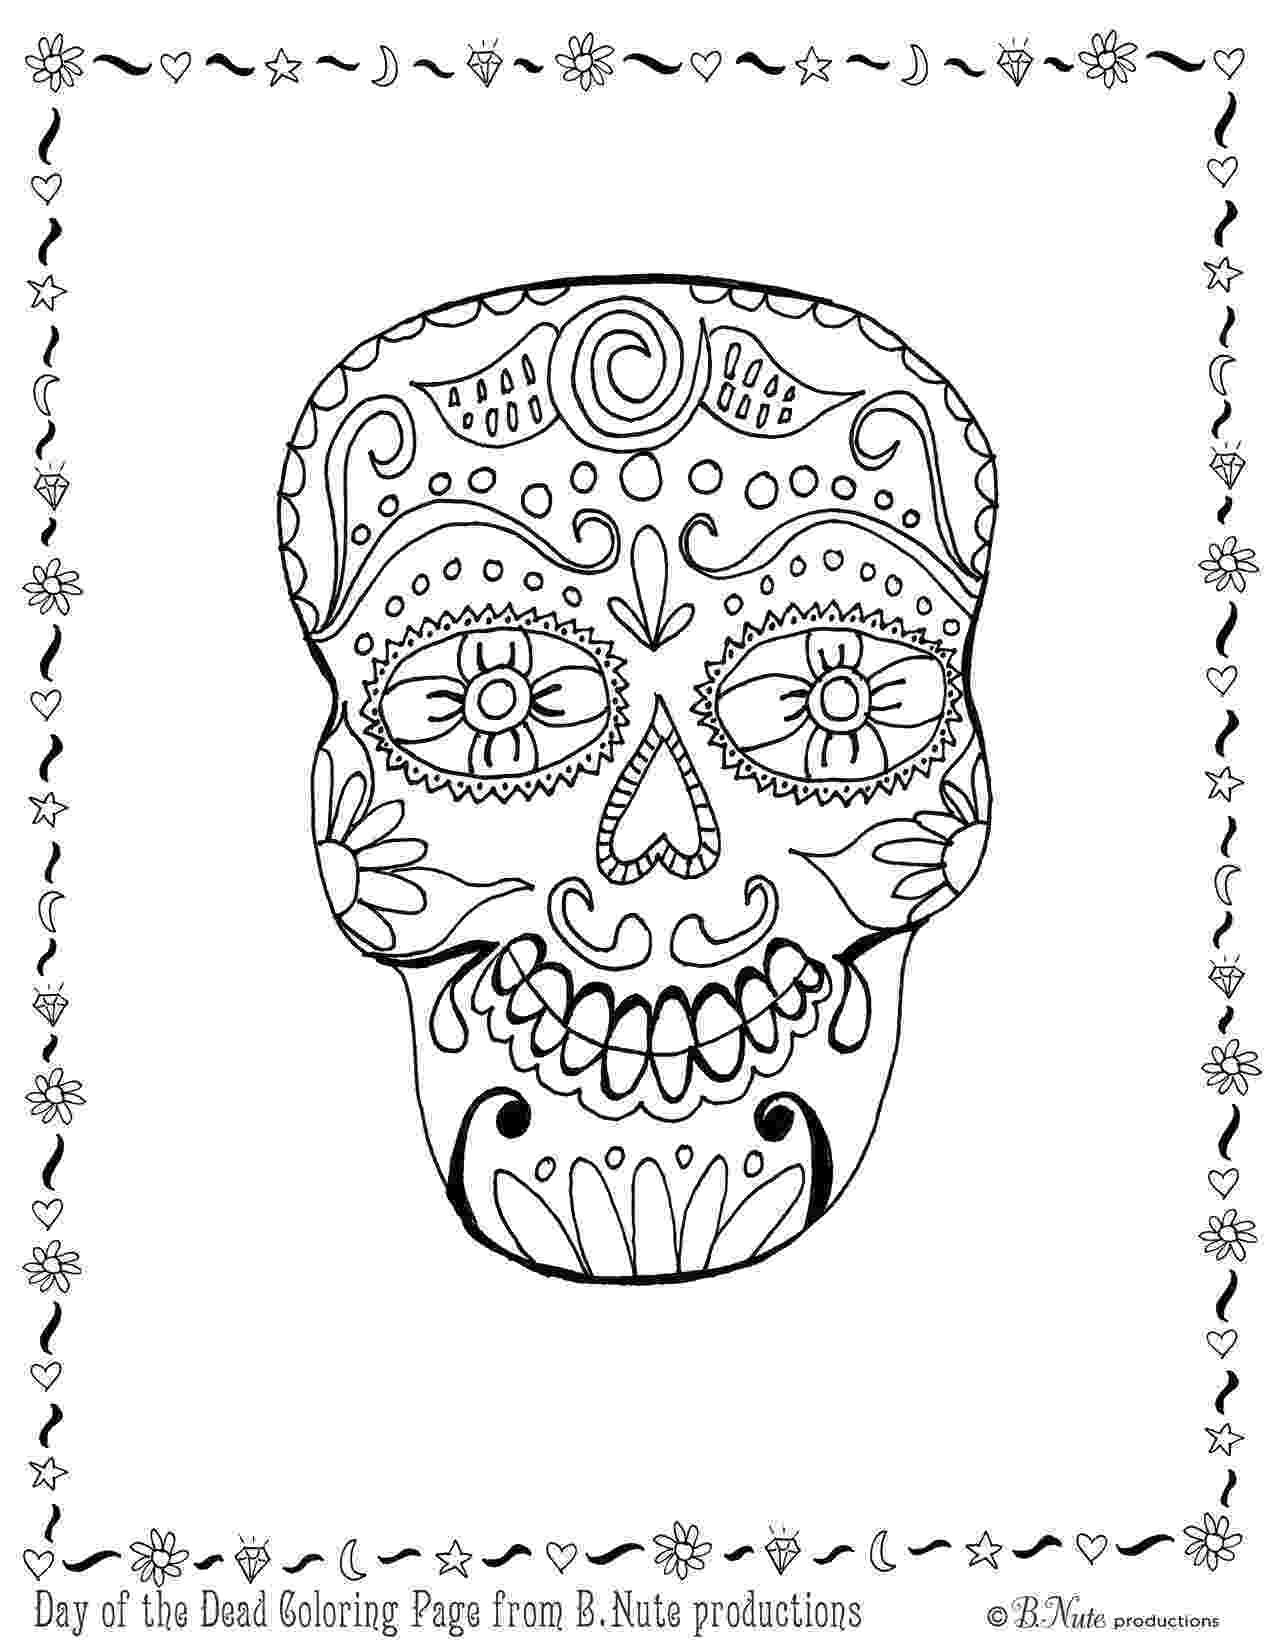 day of the dead printable pictures bnute productions november 2012 the day printable of pictures dead